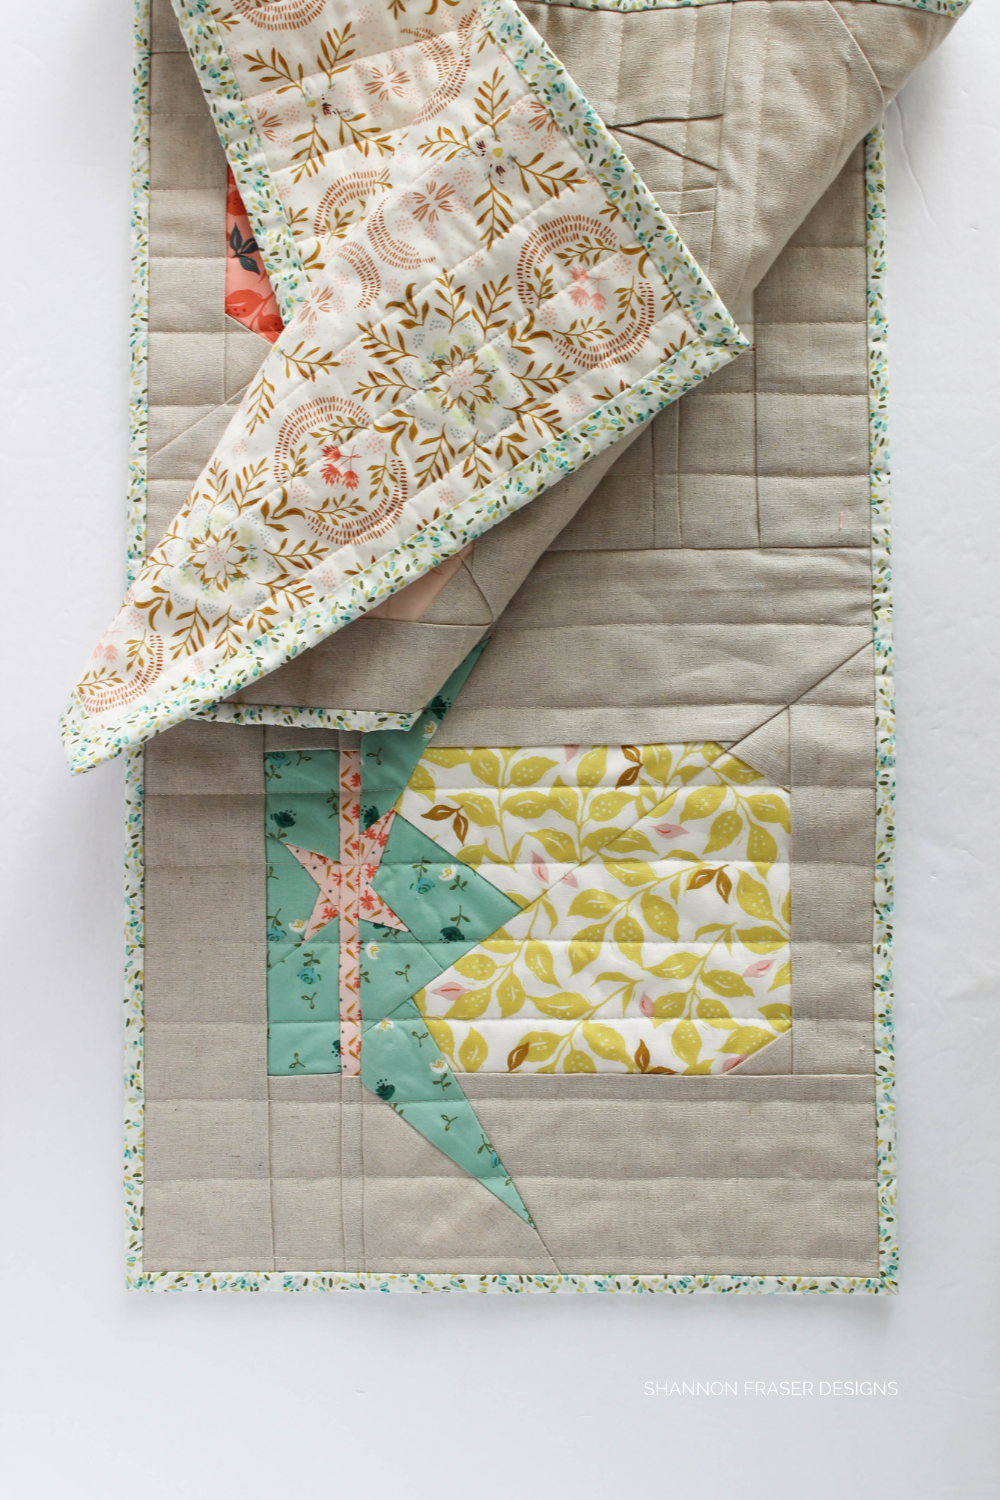 A peek at the backing on the Jolly Jelly x AGF Velvet quilted table runner by Shannon Fraser Designs #quiltedtablerunner